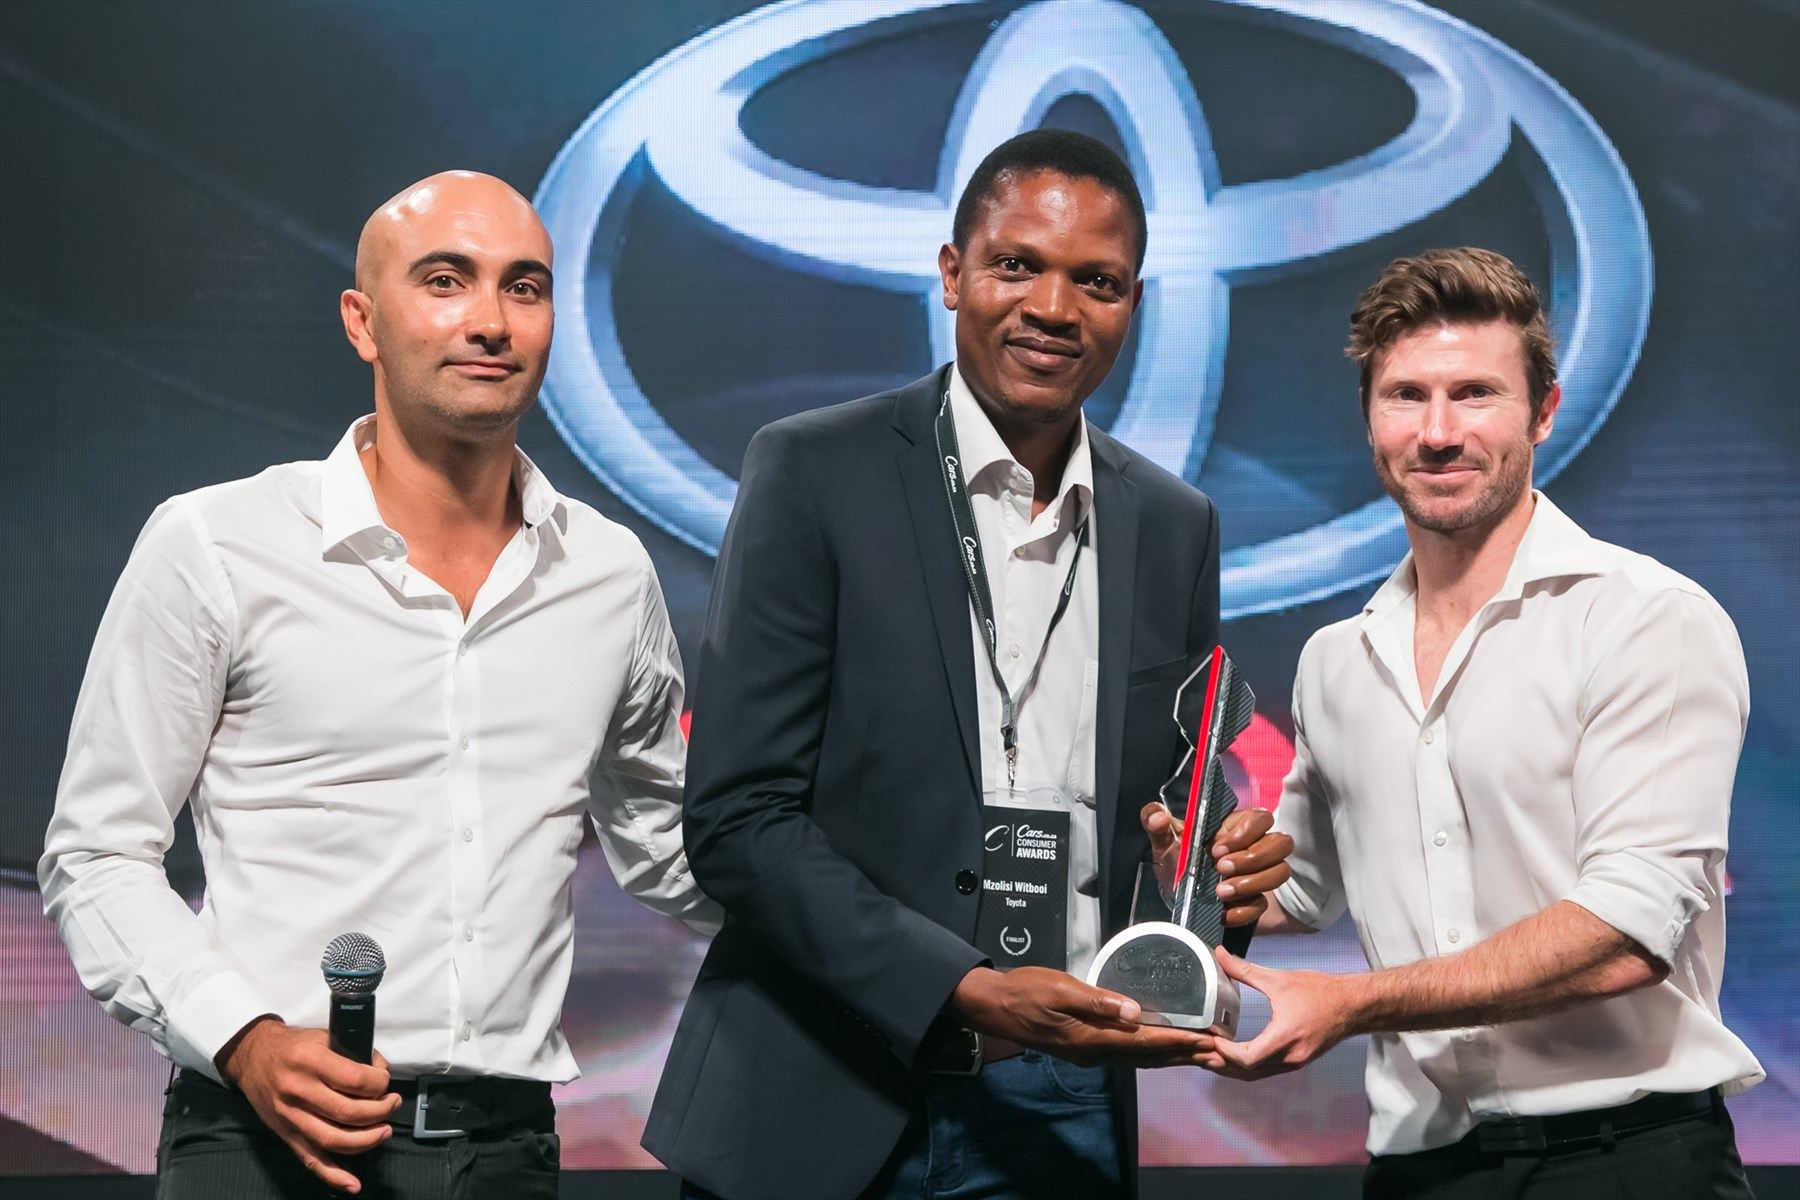 carsawards-brand-of-the-year_1800x1800